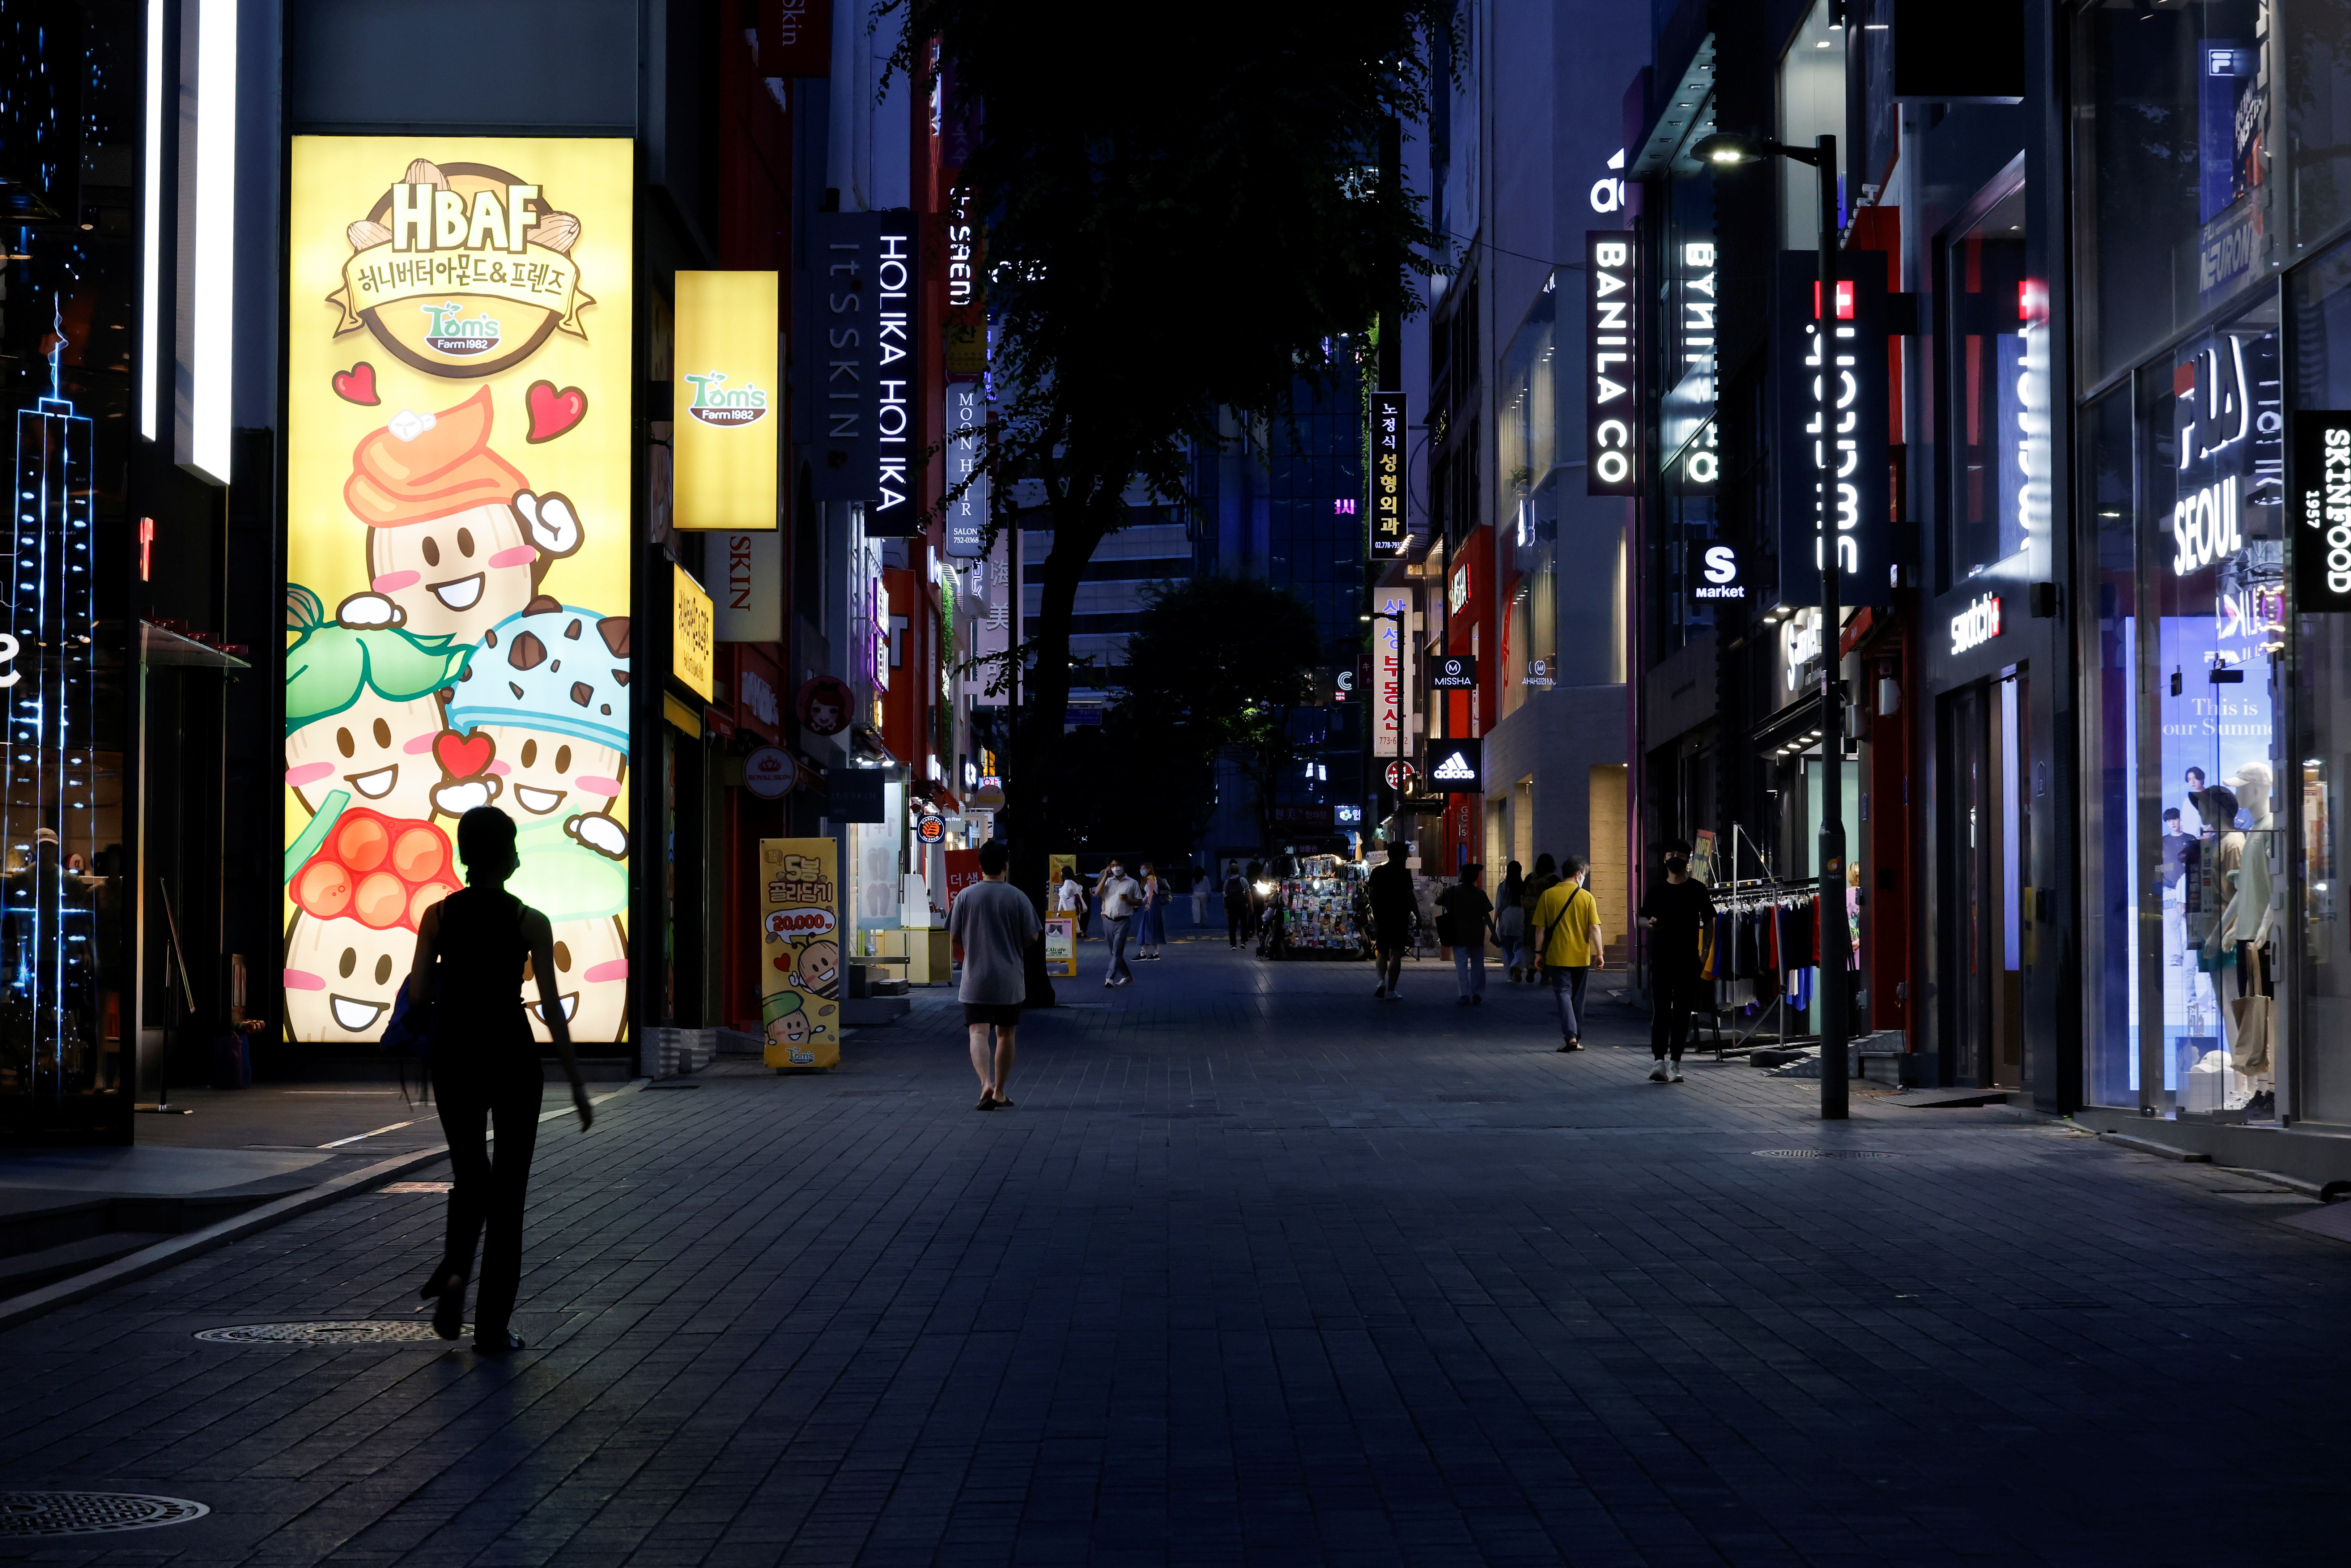 Few people walk on a usually crowded shopping street amid tightened social distancing rules due to the coronavirus disease (COVID-19) pandemic in Seoul, South Korea, July 12, 2021.  REUTERS/Heo Ran